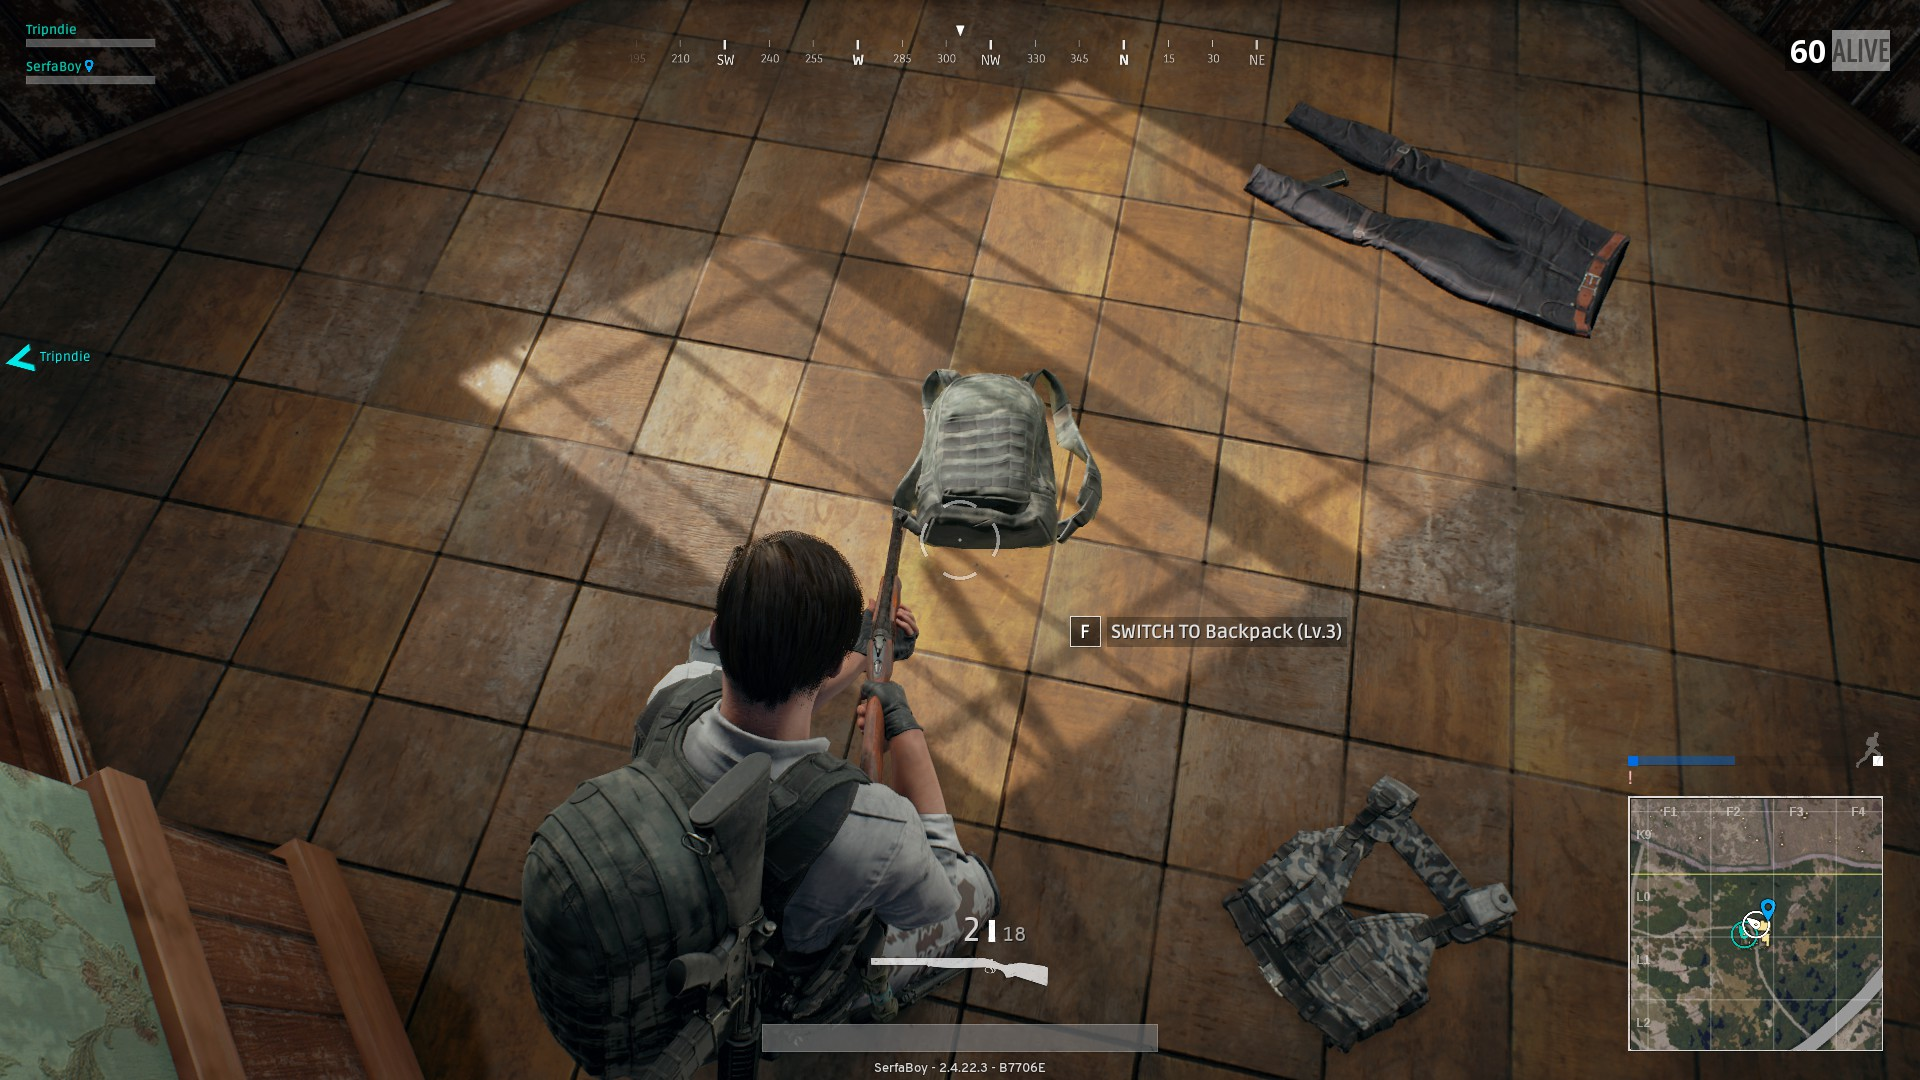 Coming across a Level 3 Backpack in PUBG is a special moment, and now you can buy your own!